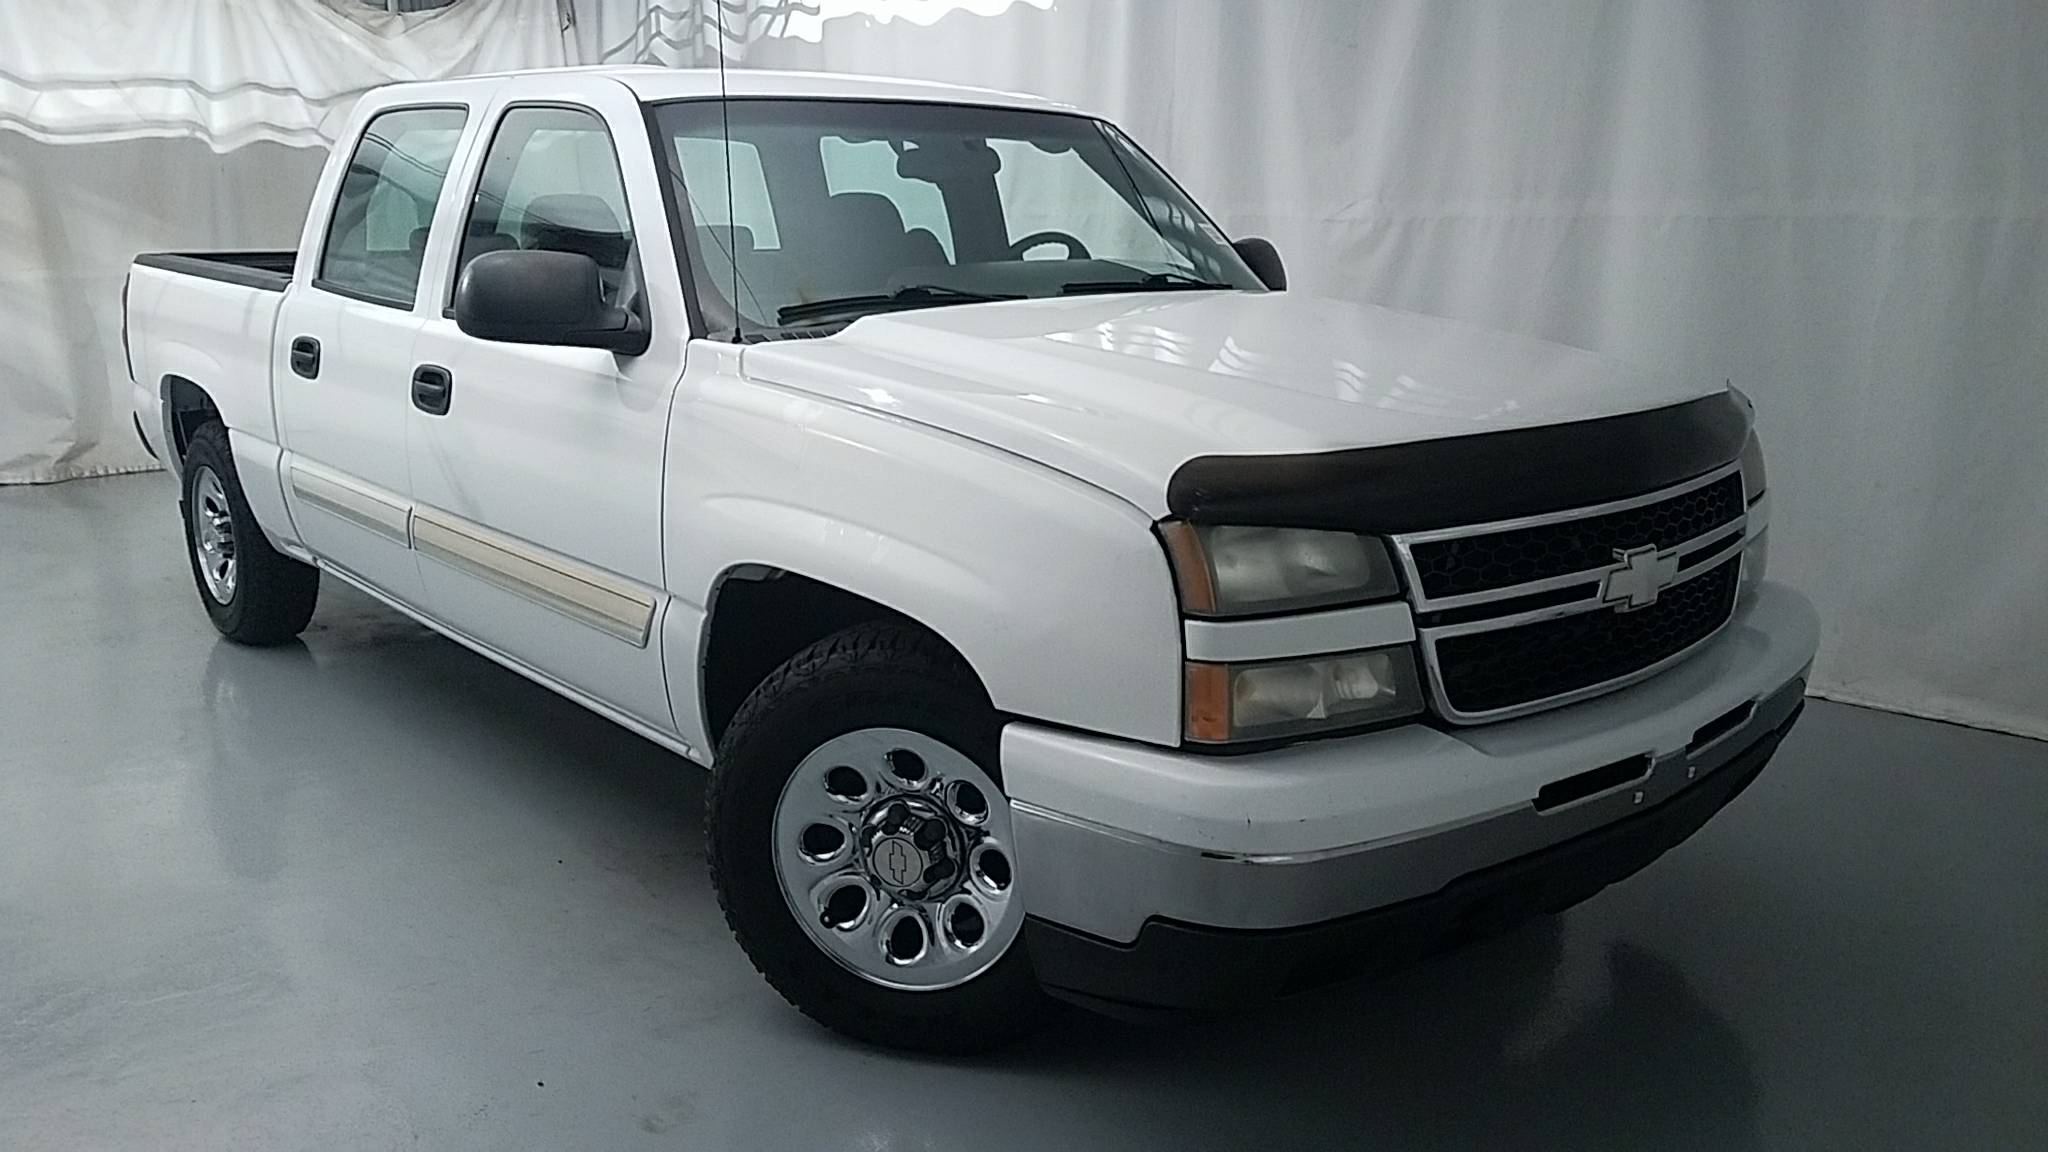 Used Chevrolet Silverado 1500 Classic Vehicles for Sale in Hammond ...